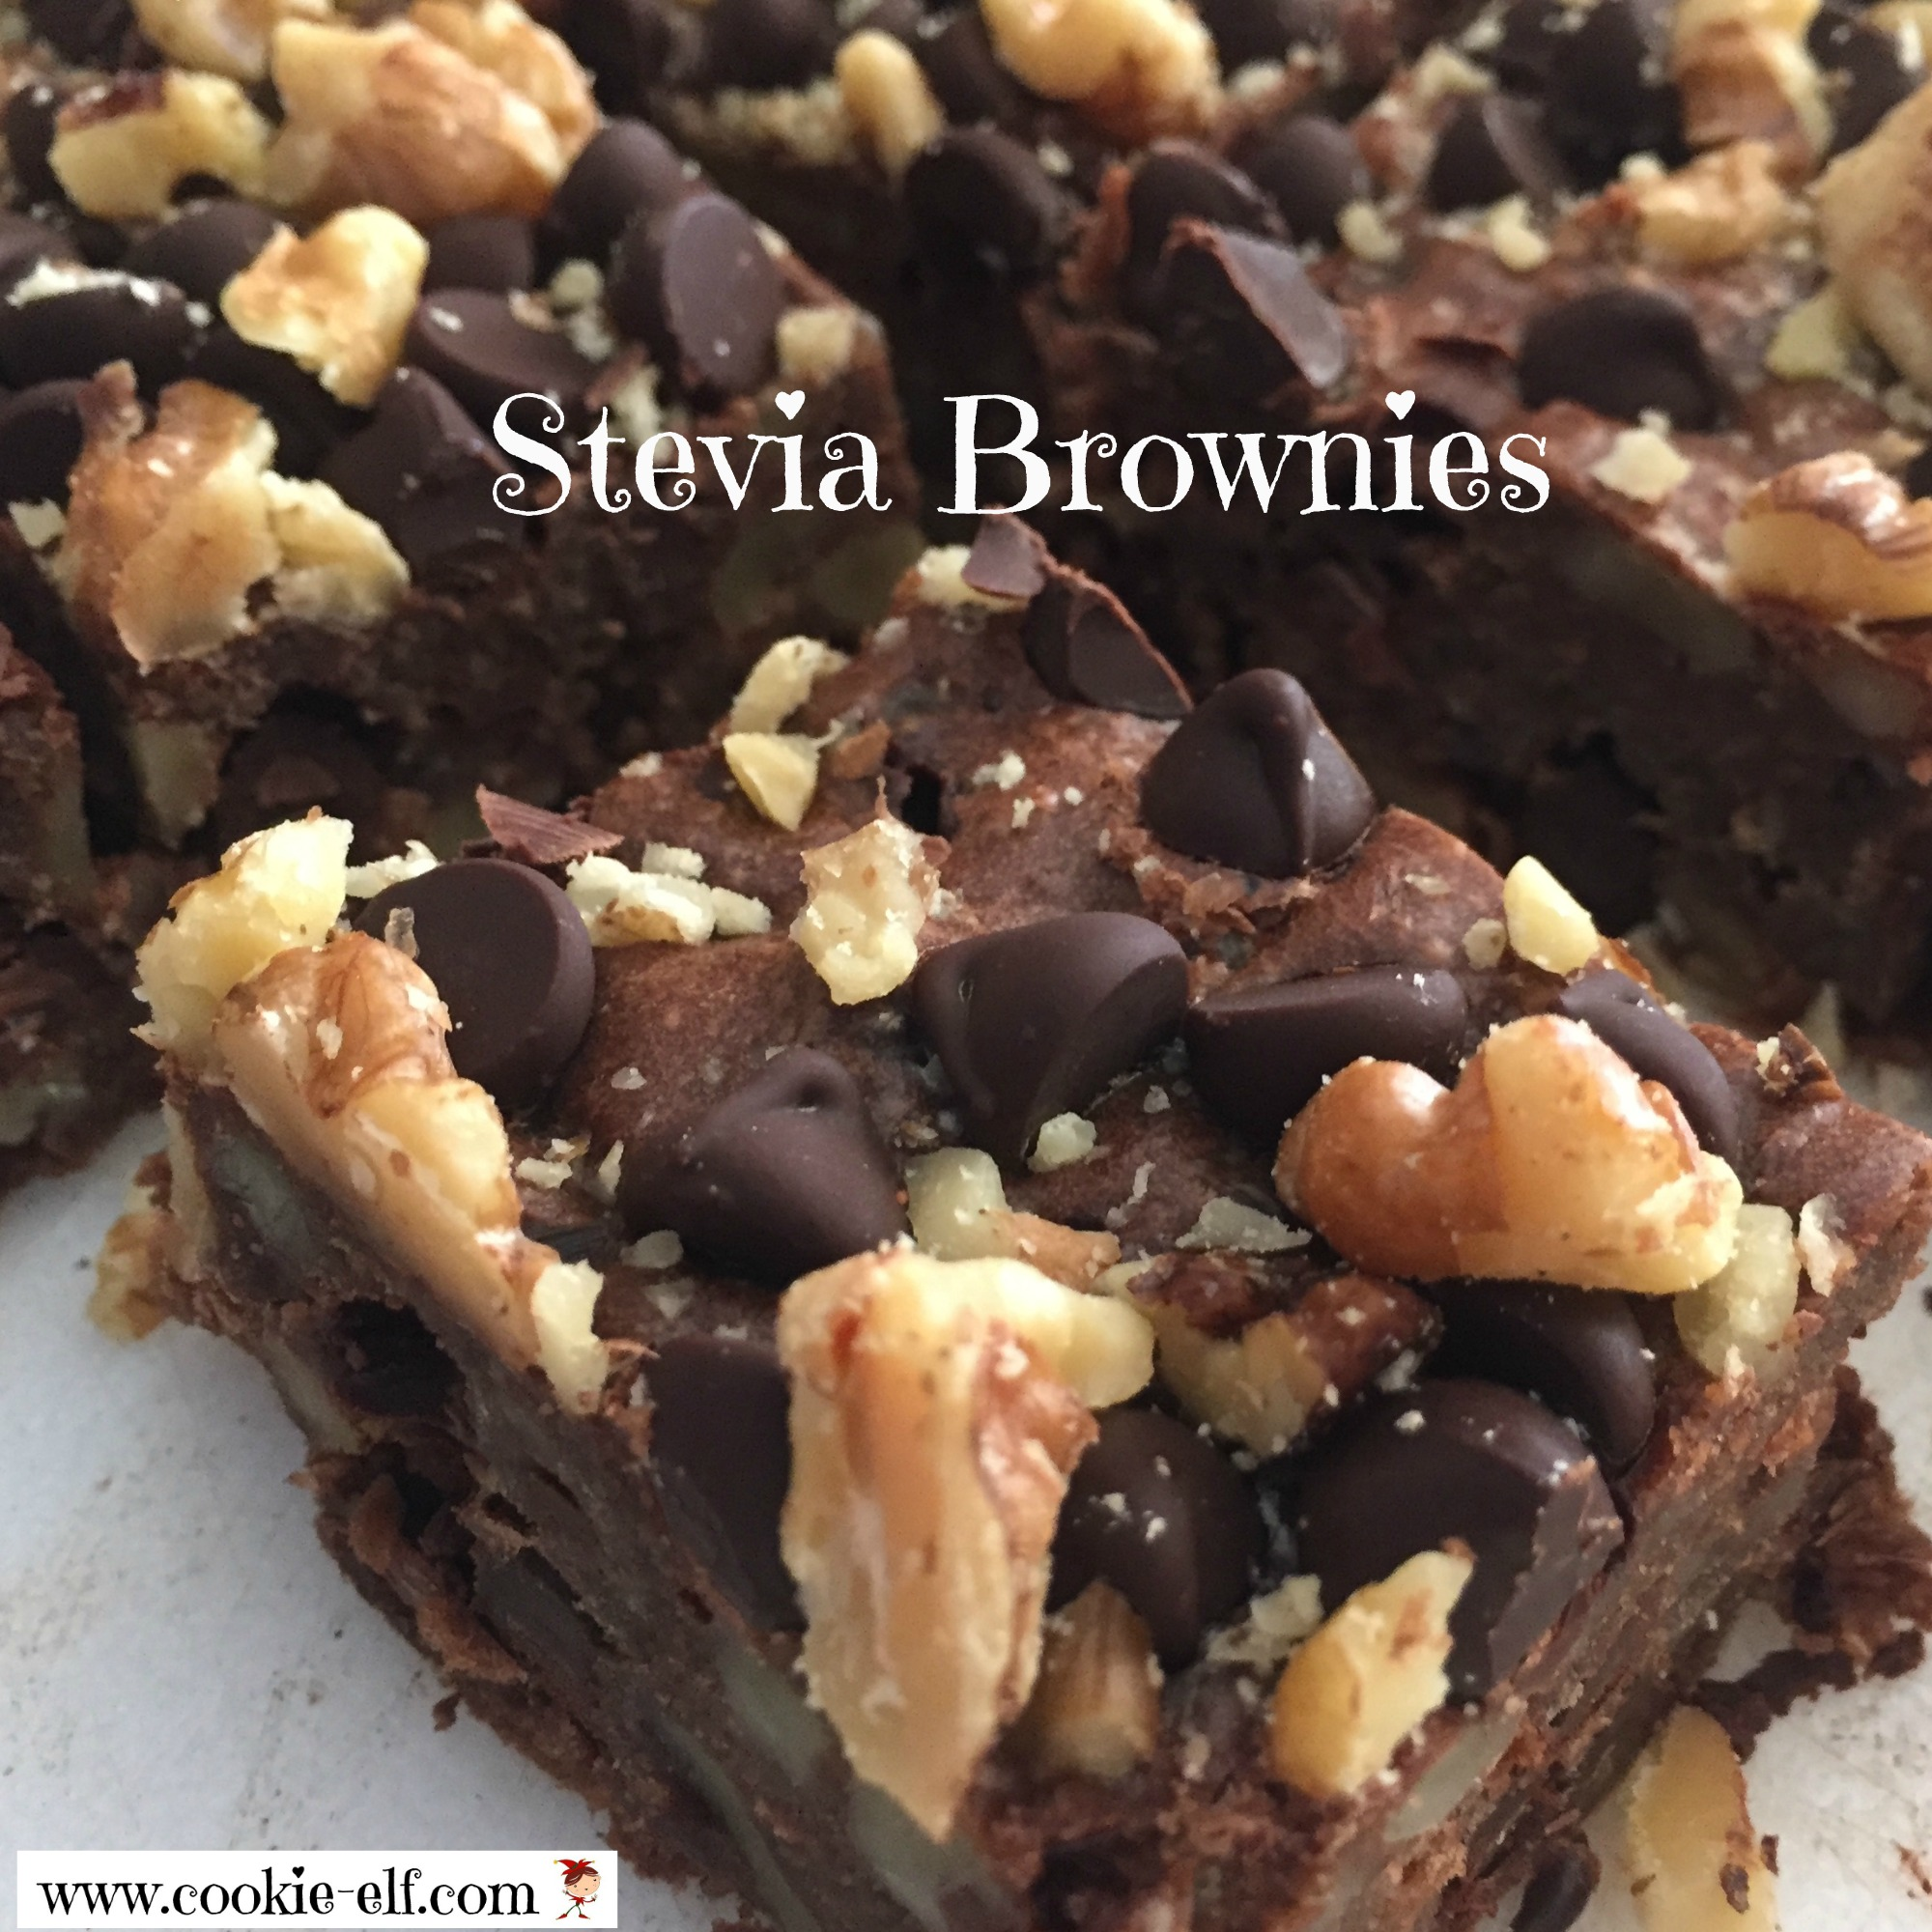 Stevia Brownies from The Cookie Elf